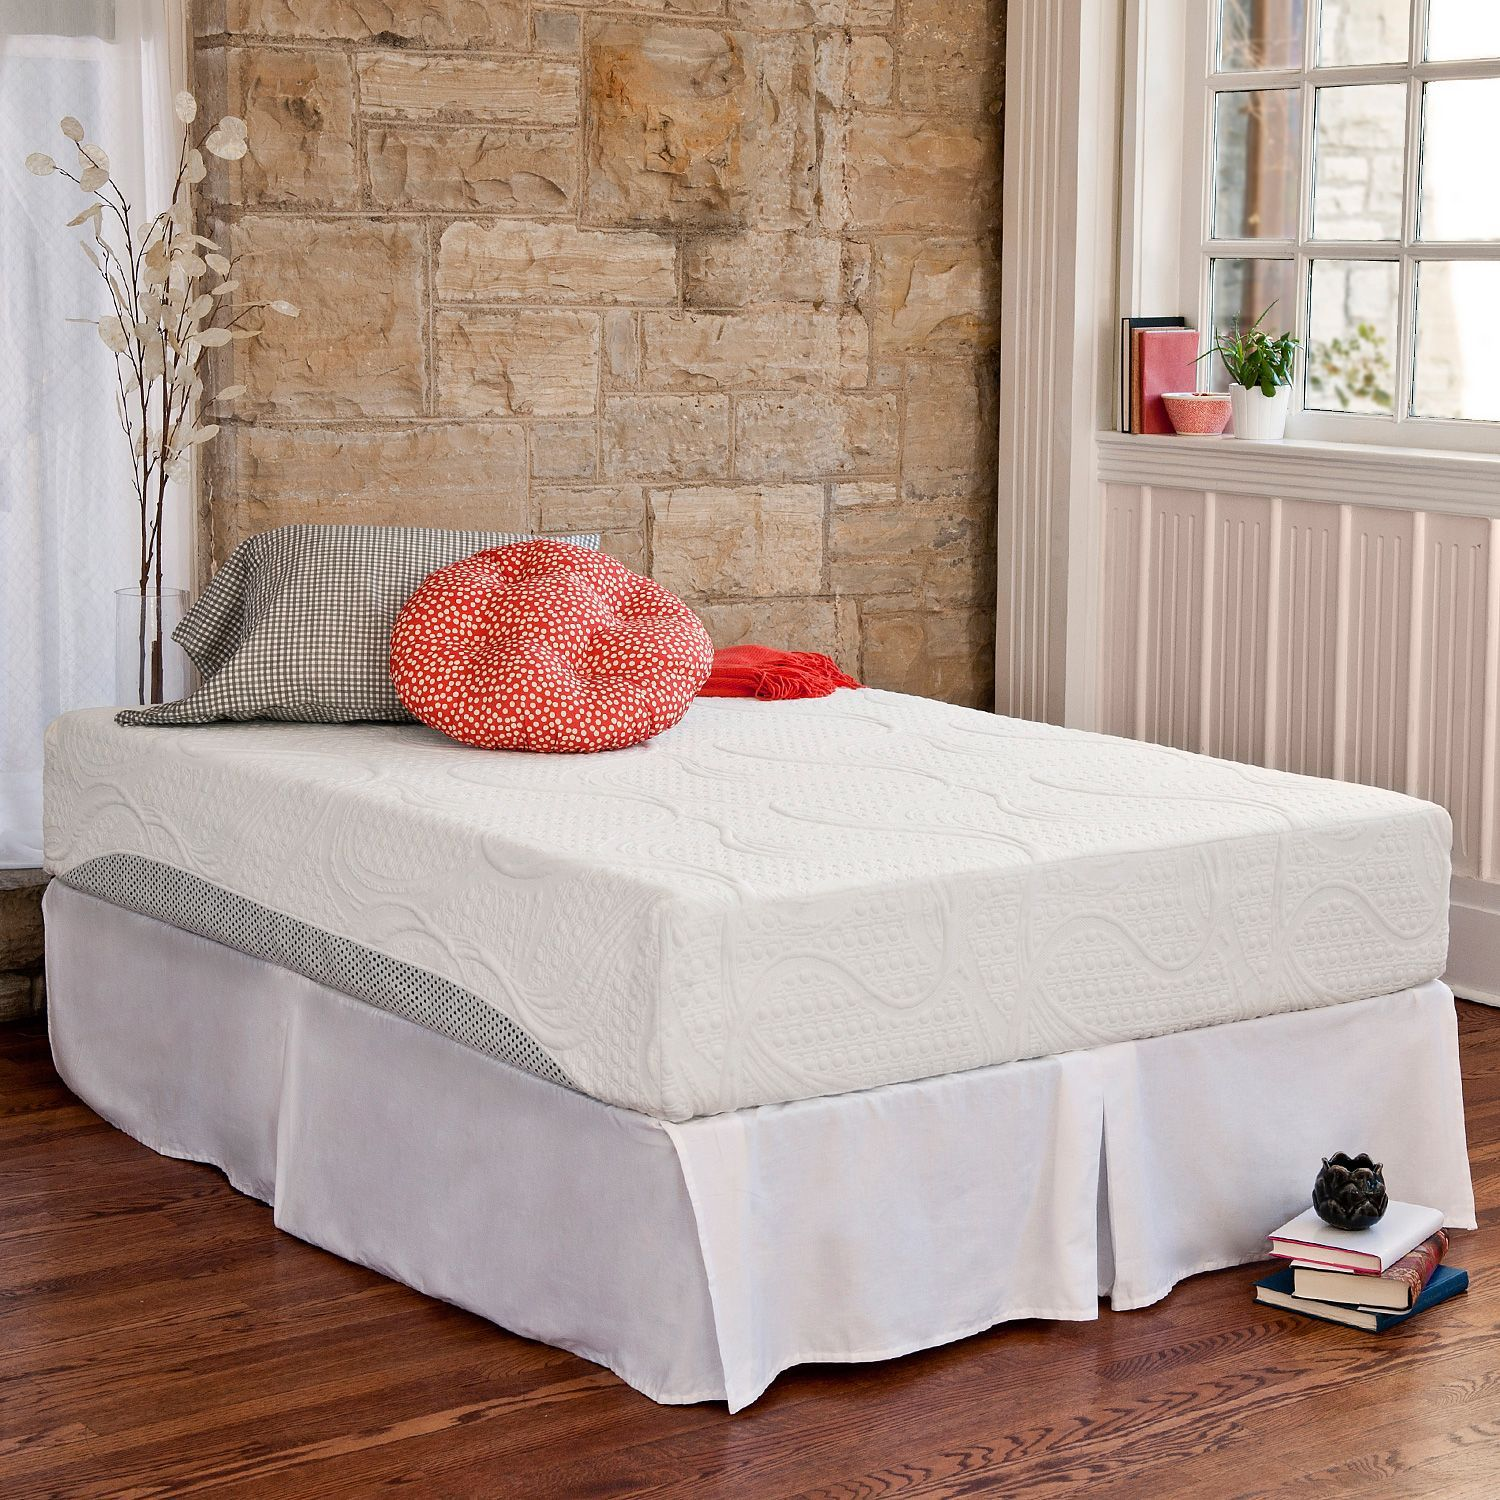 10 Night Therapy Pressure Relief Memory Foam Mattress Bed Frame Set Full Sam S Club Great Reviews